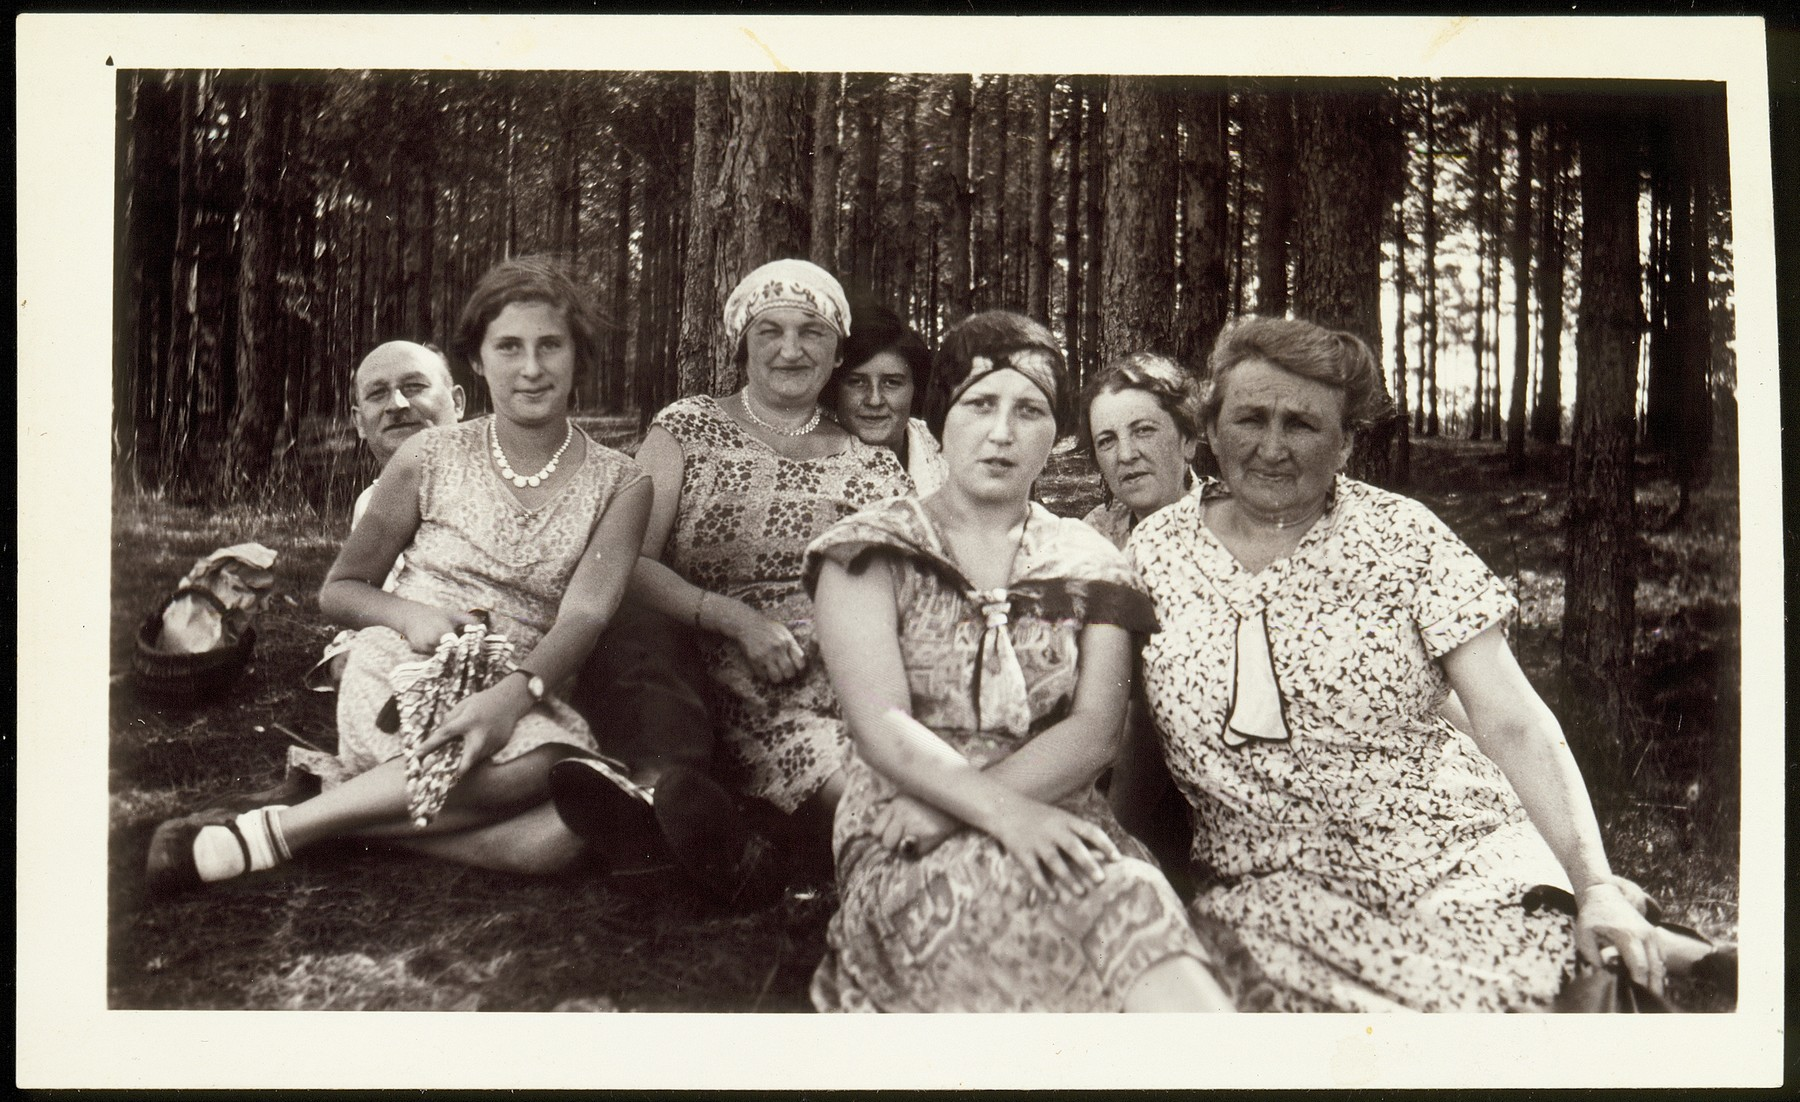 Family portrait taken in a wooded area not far from Vilna.  Front row, from right to left; Annie Virshubski Foster, Margolia Saposnikow, Sonia Virshubski Saposnikow and Nachama Saposnikow. Sitting in the back from right to left, Mrs Levenson, Golda (last name unknown) and Hillel Saposnikow.